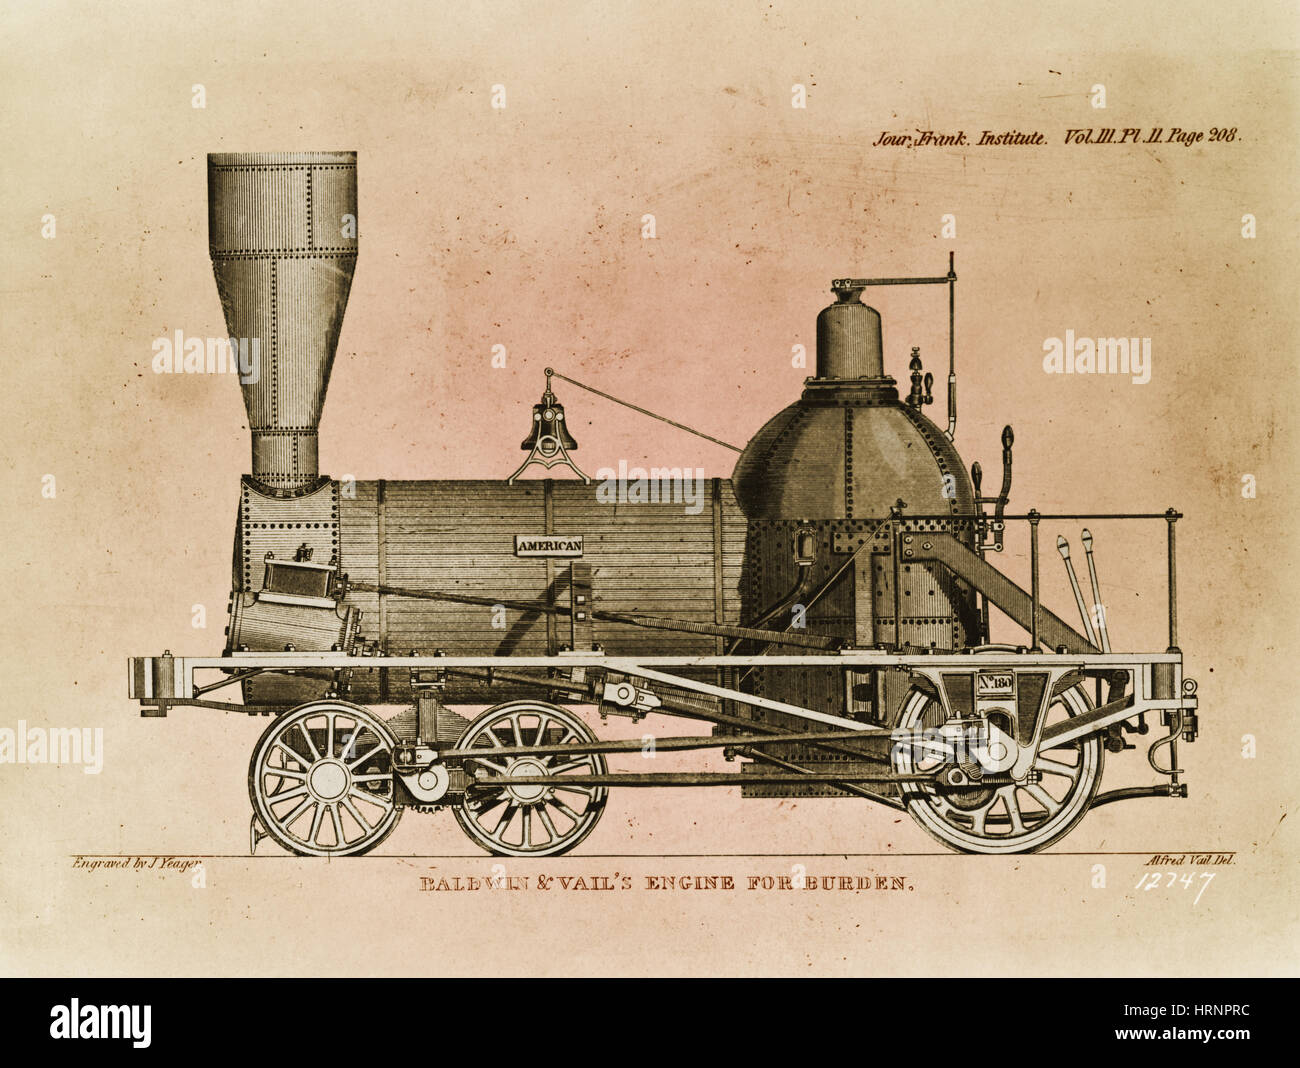 Baldwin Steam Locomotive, 1841